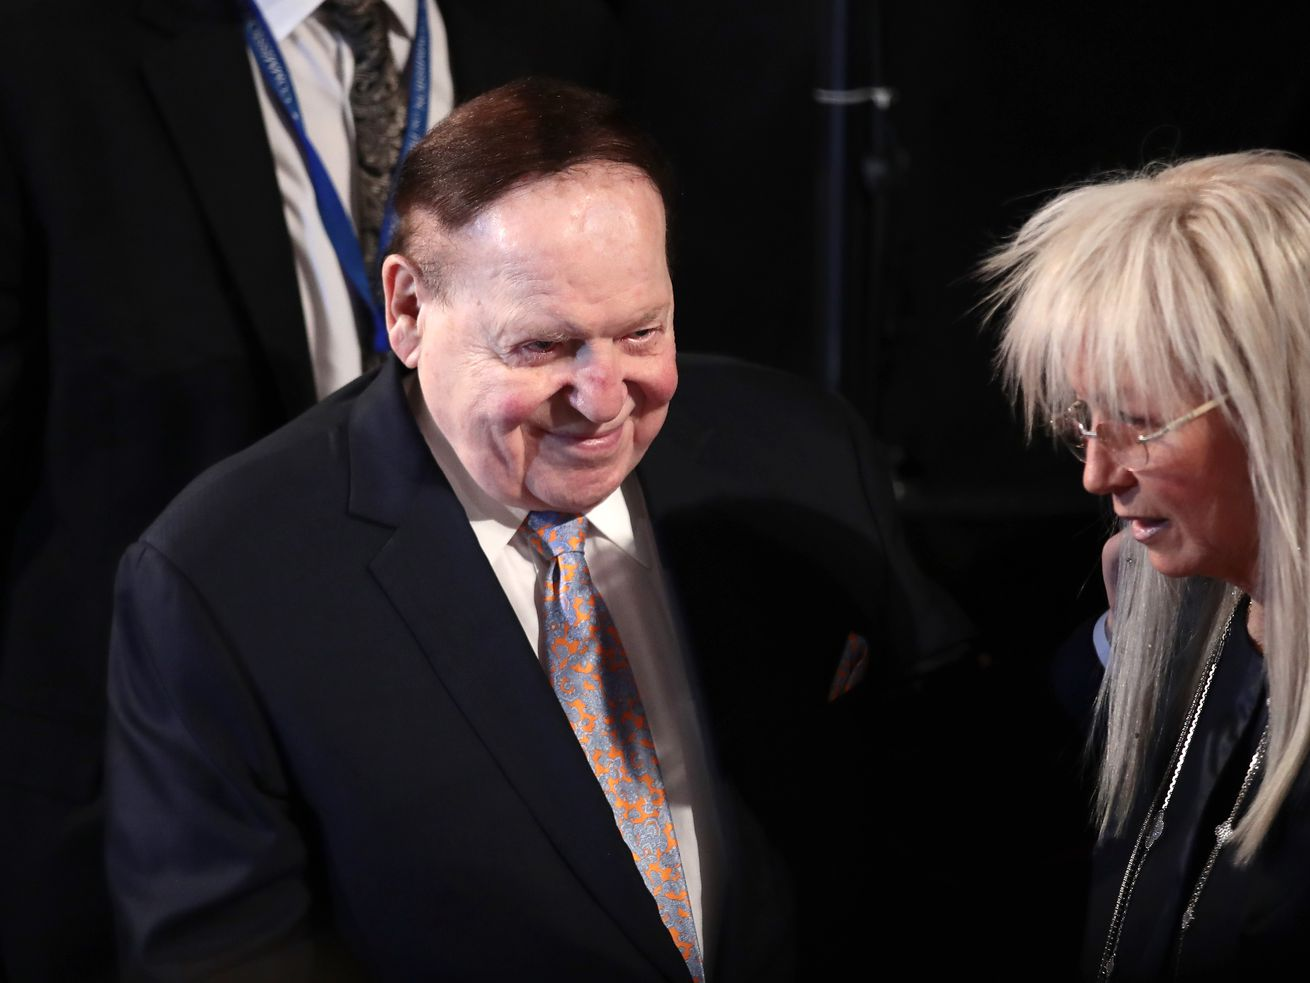 Conservative megadonor Sheldon Adelson attended the September 26, 2016 debate between Donald Trump and Hillary Cinton.